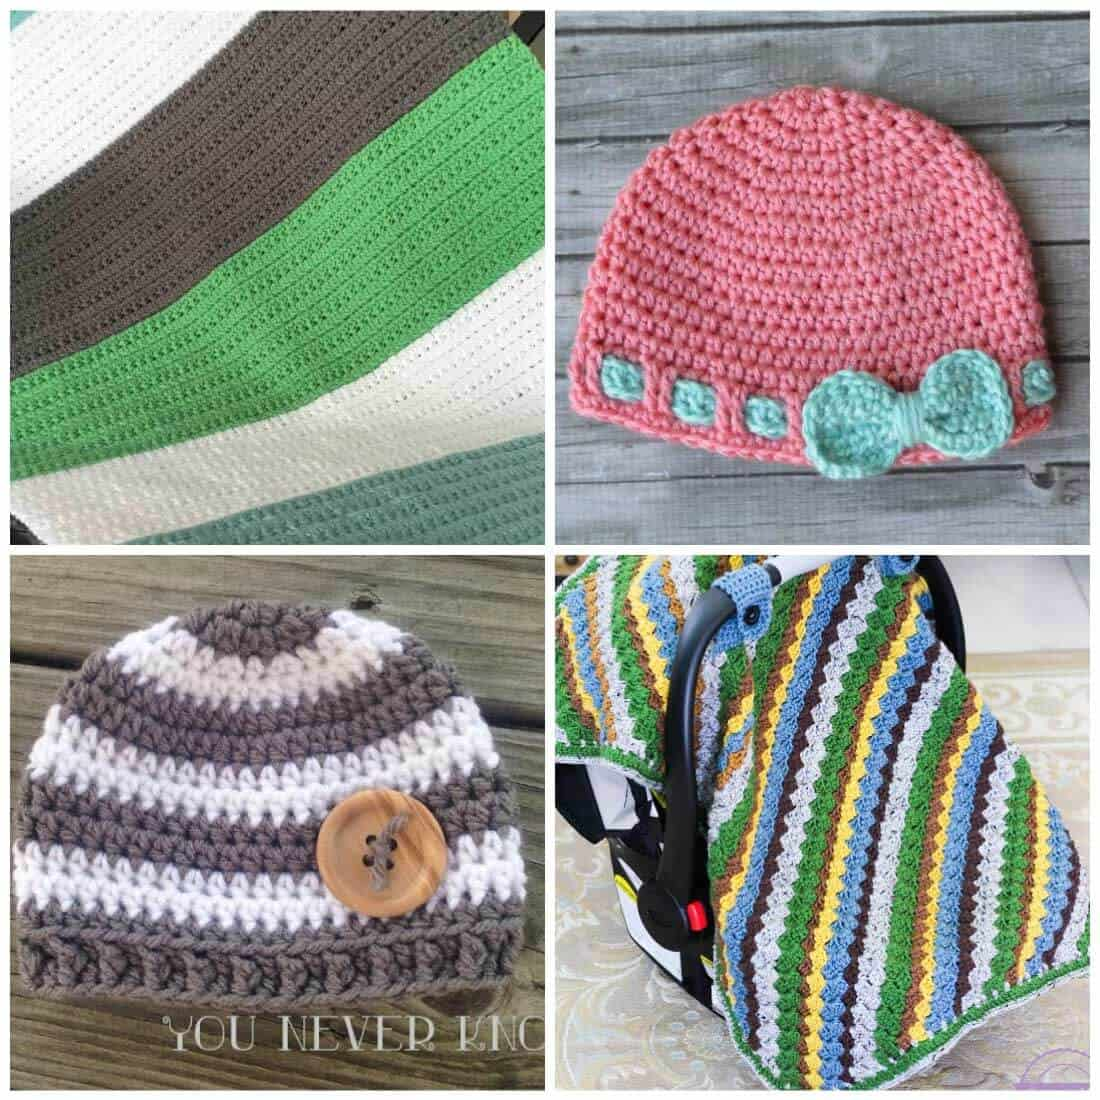 free crochet patterns   baby crochet patterns   crochet patterns for baby   Use one of these adorable crochet patterns to make something for that upcoming baby shower. These free patterns make adorable gifts that will be treasured for a lifetime.